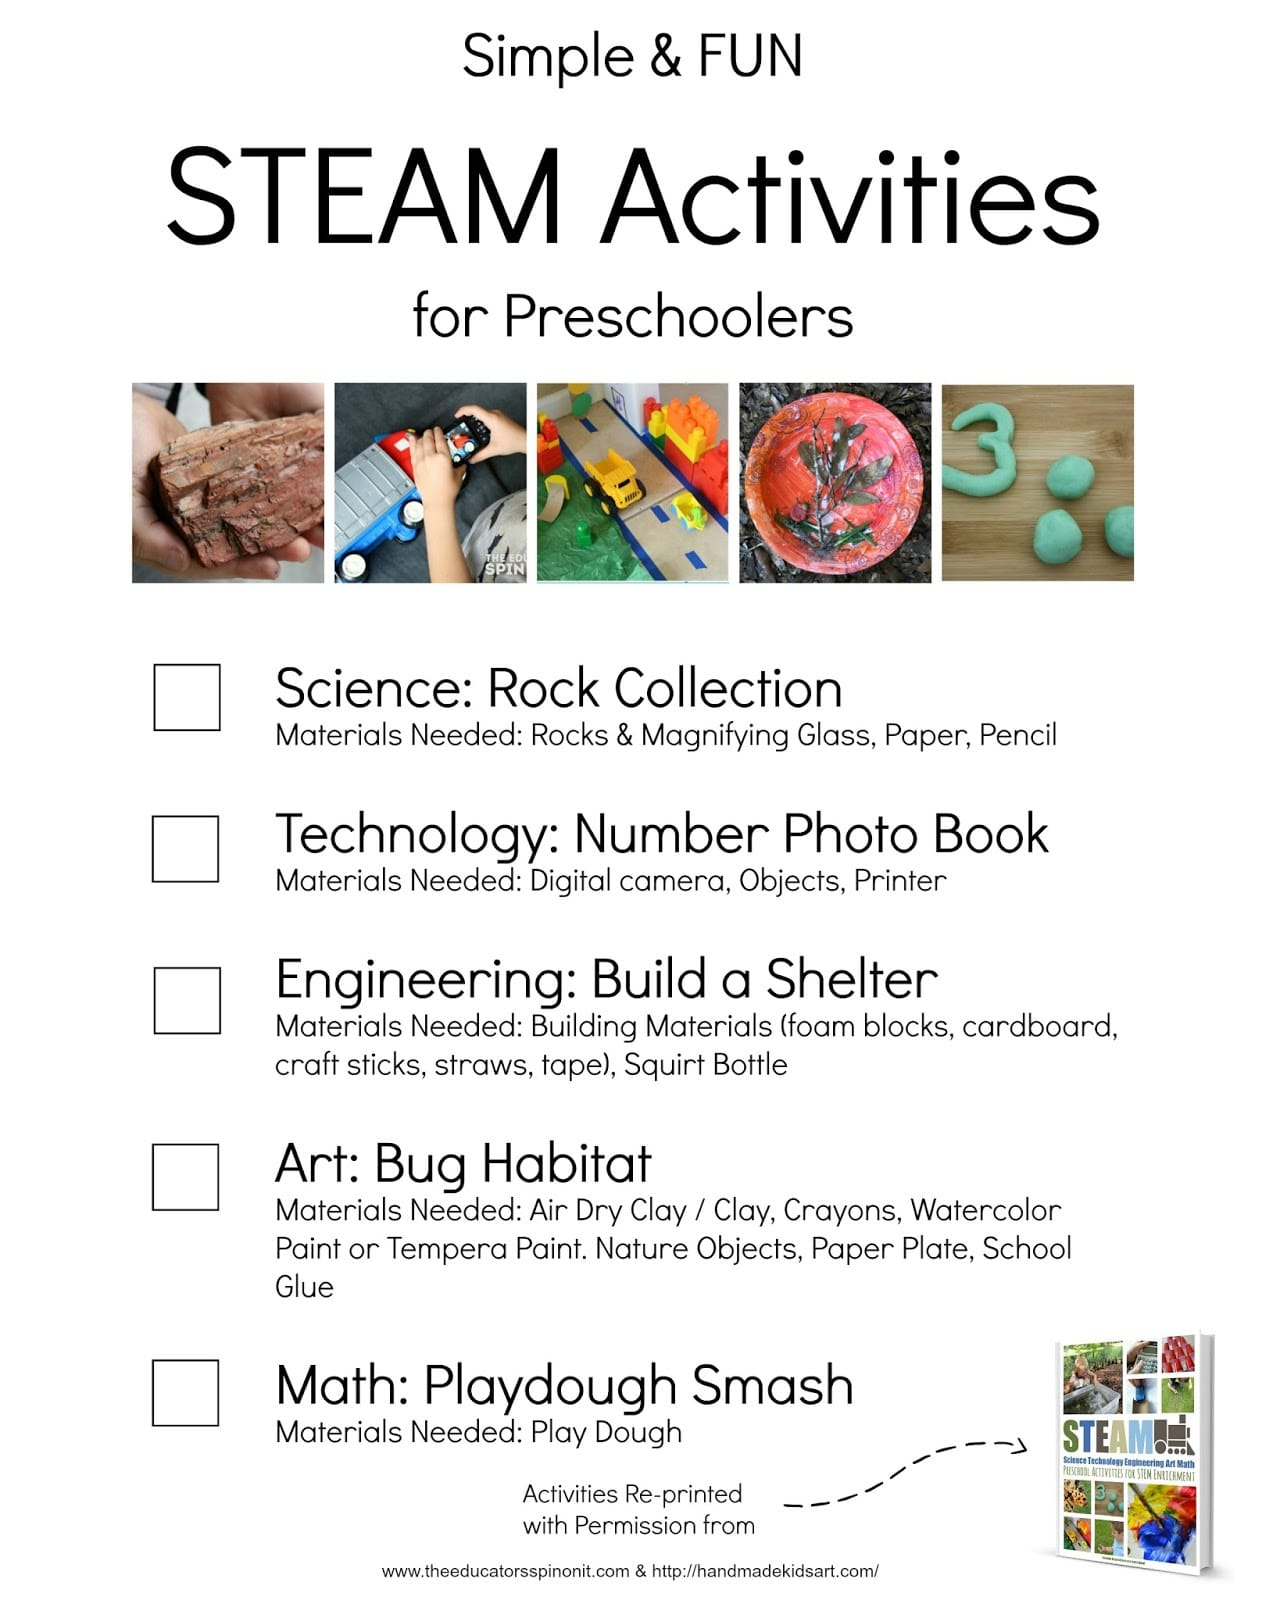 Simple And Fun Steam Activities For Preschoolers